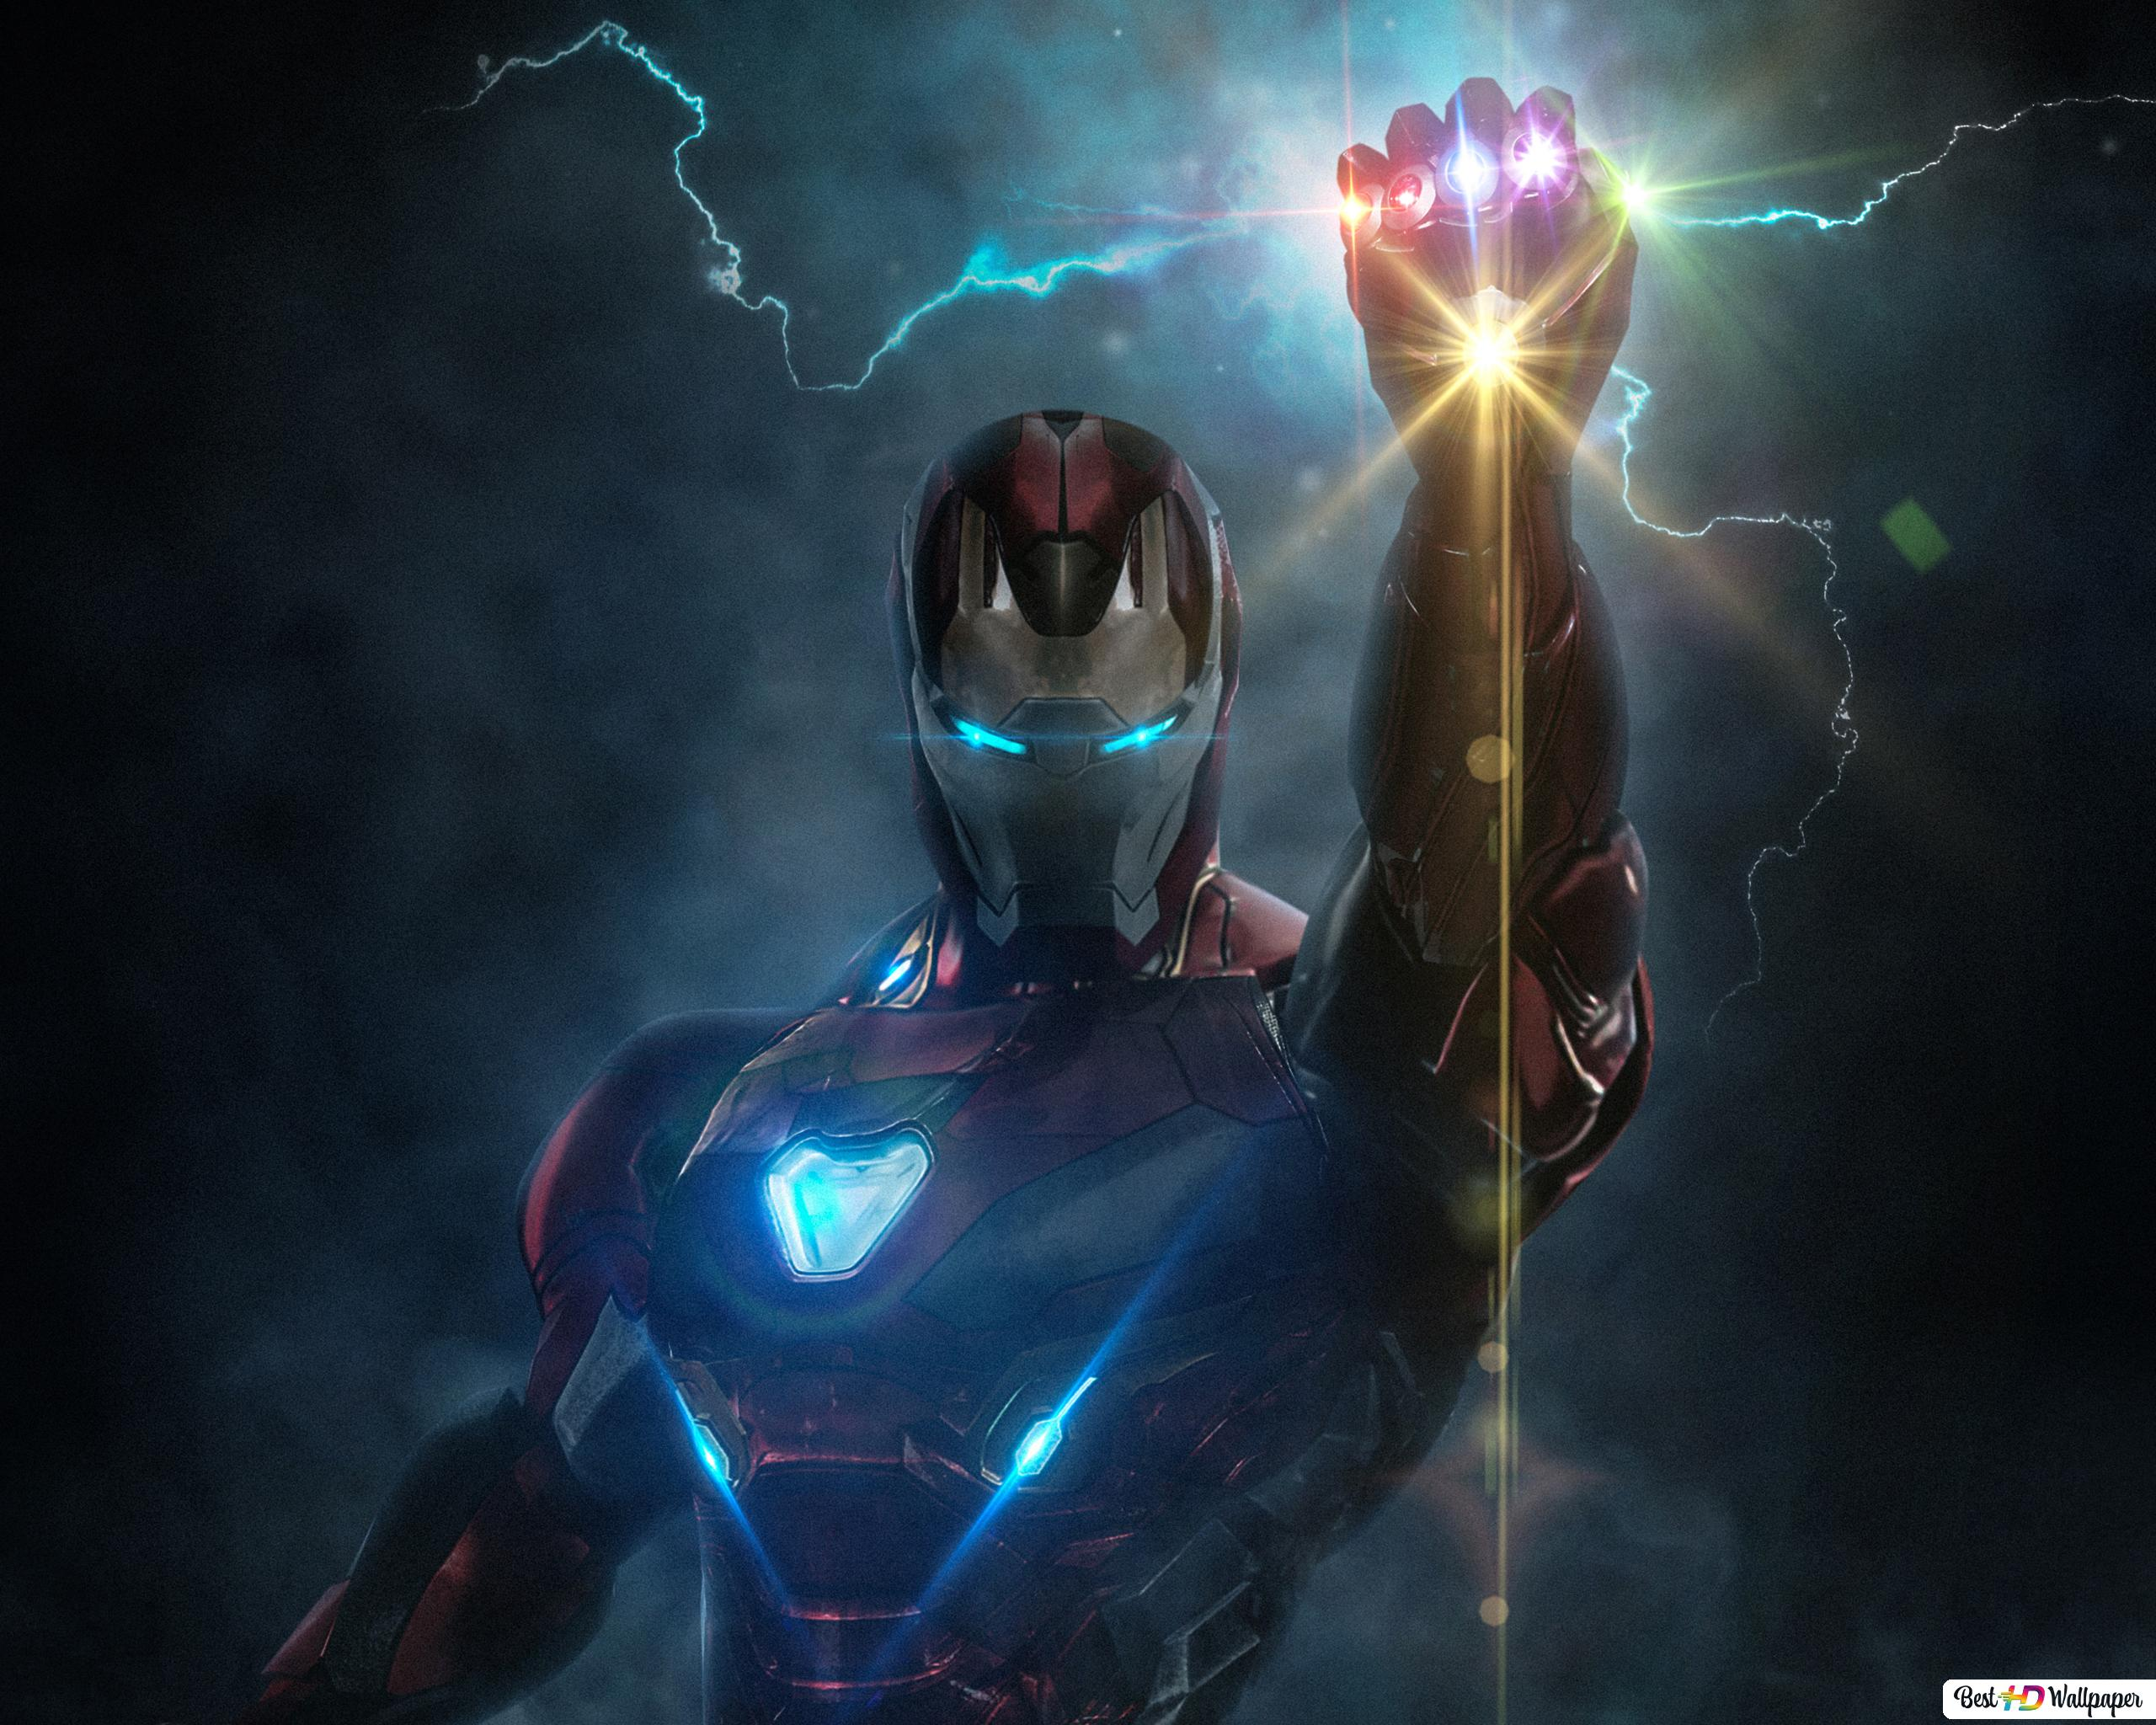 Wallpaper Iron Man Infinity Gauntlet Hd Creative: Ironman With Infinity Glove HD